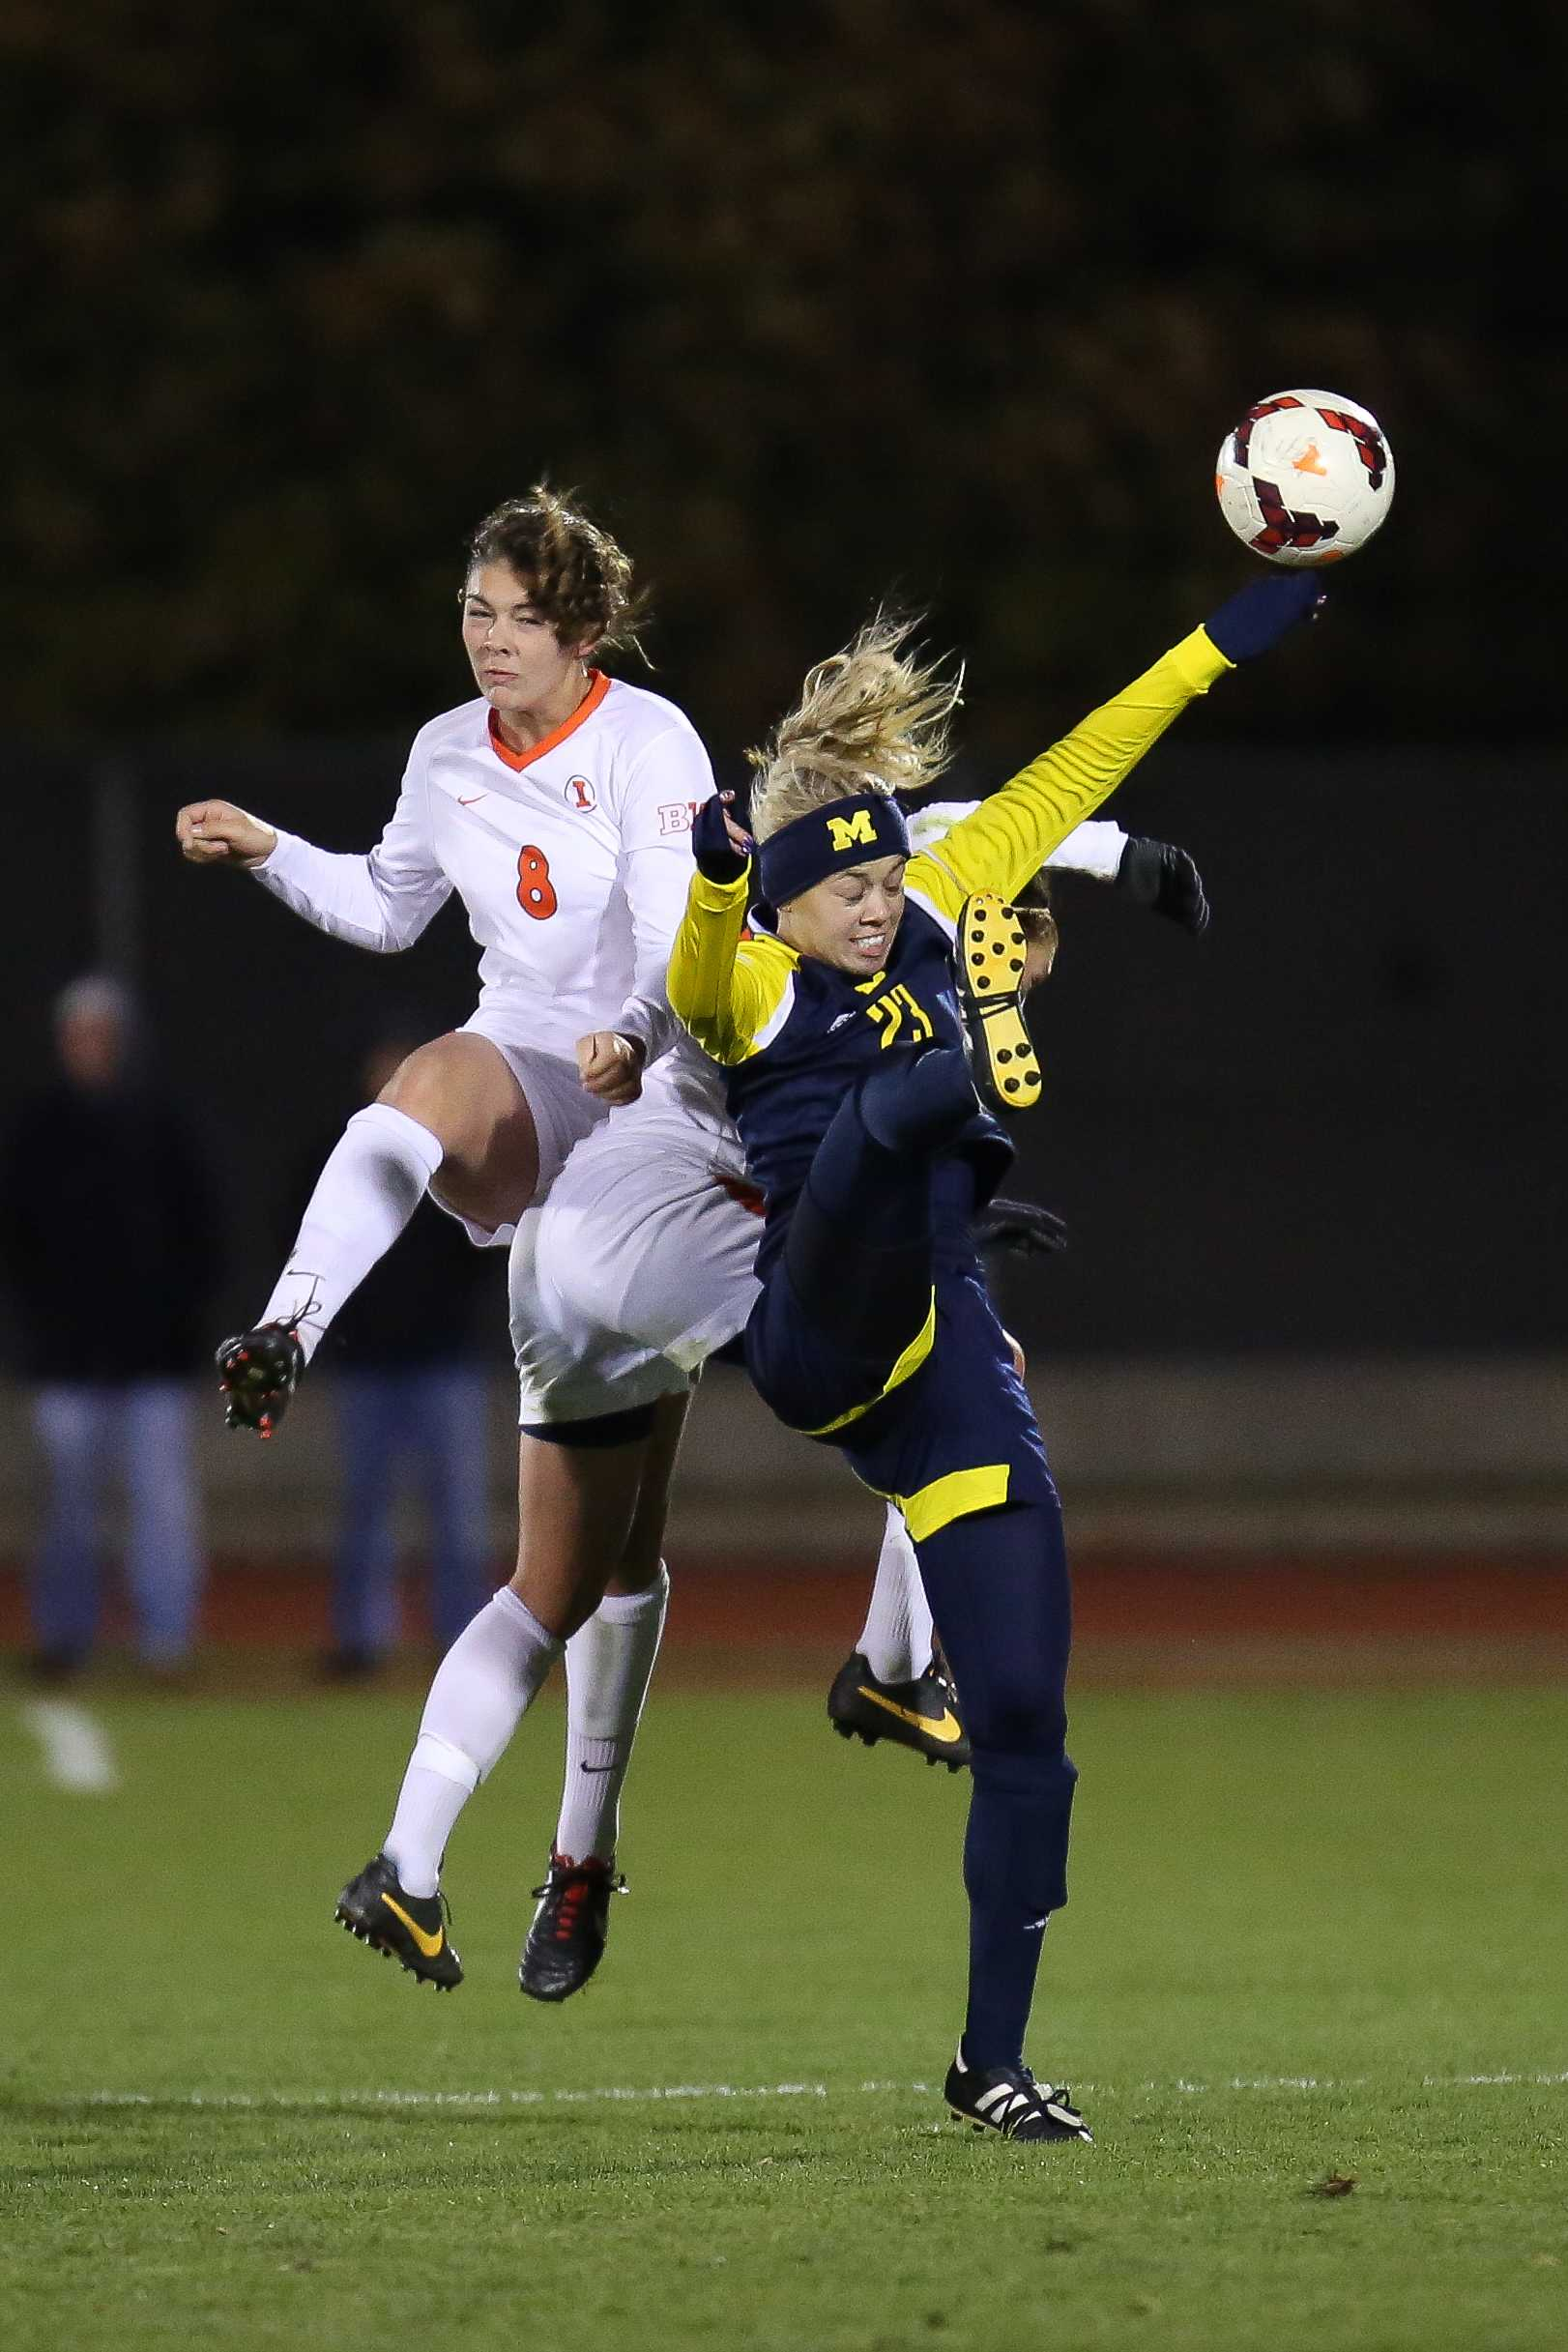 Illinois' Casey Conine (8) and Amy Feher (24) clash with Michigan's Chloe Sosenko (23) for a header during the game against Michigan at Illini Soccer and Track Stadium on Friday, Oct. 25. The Illini lost 2-0.